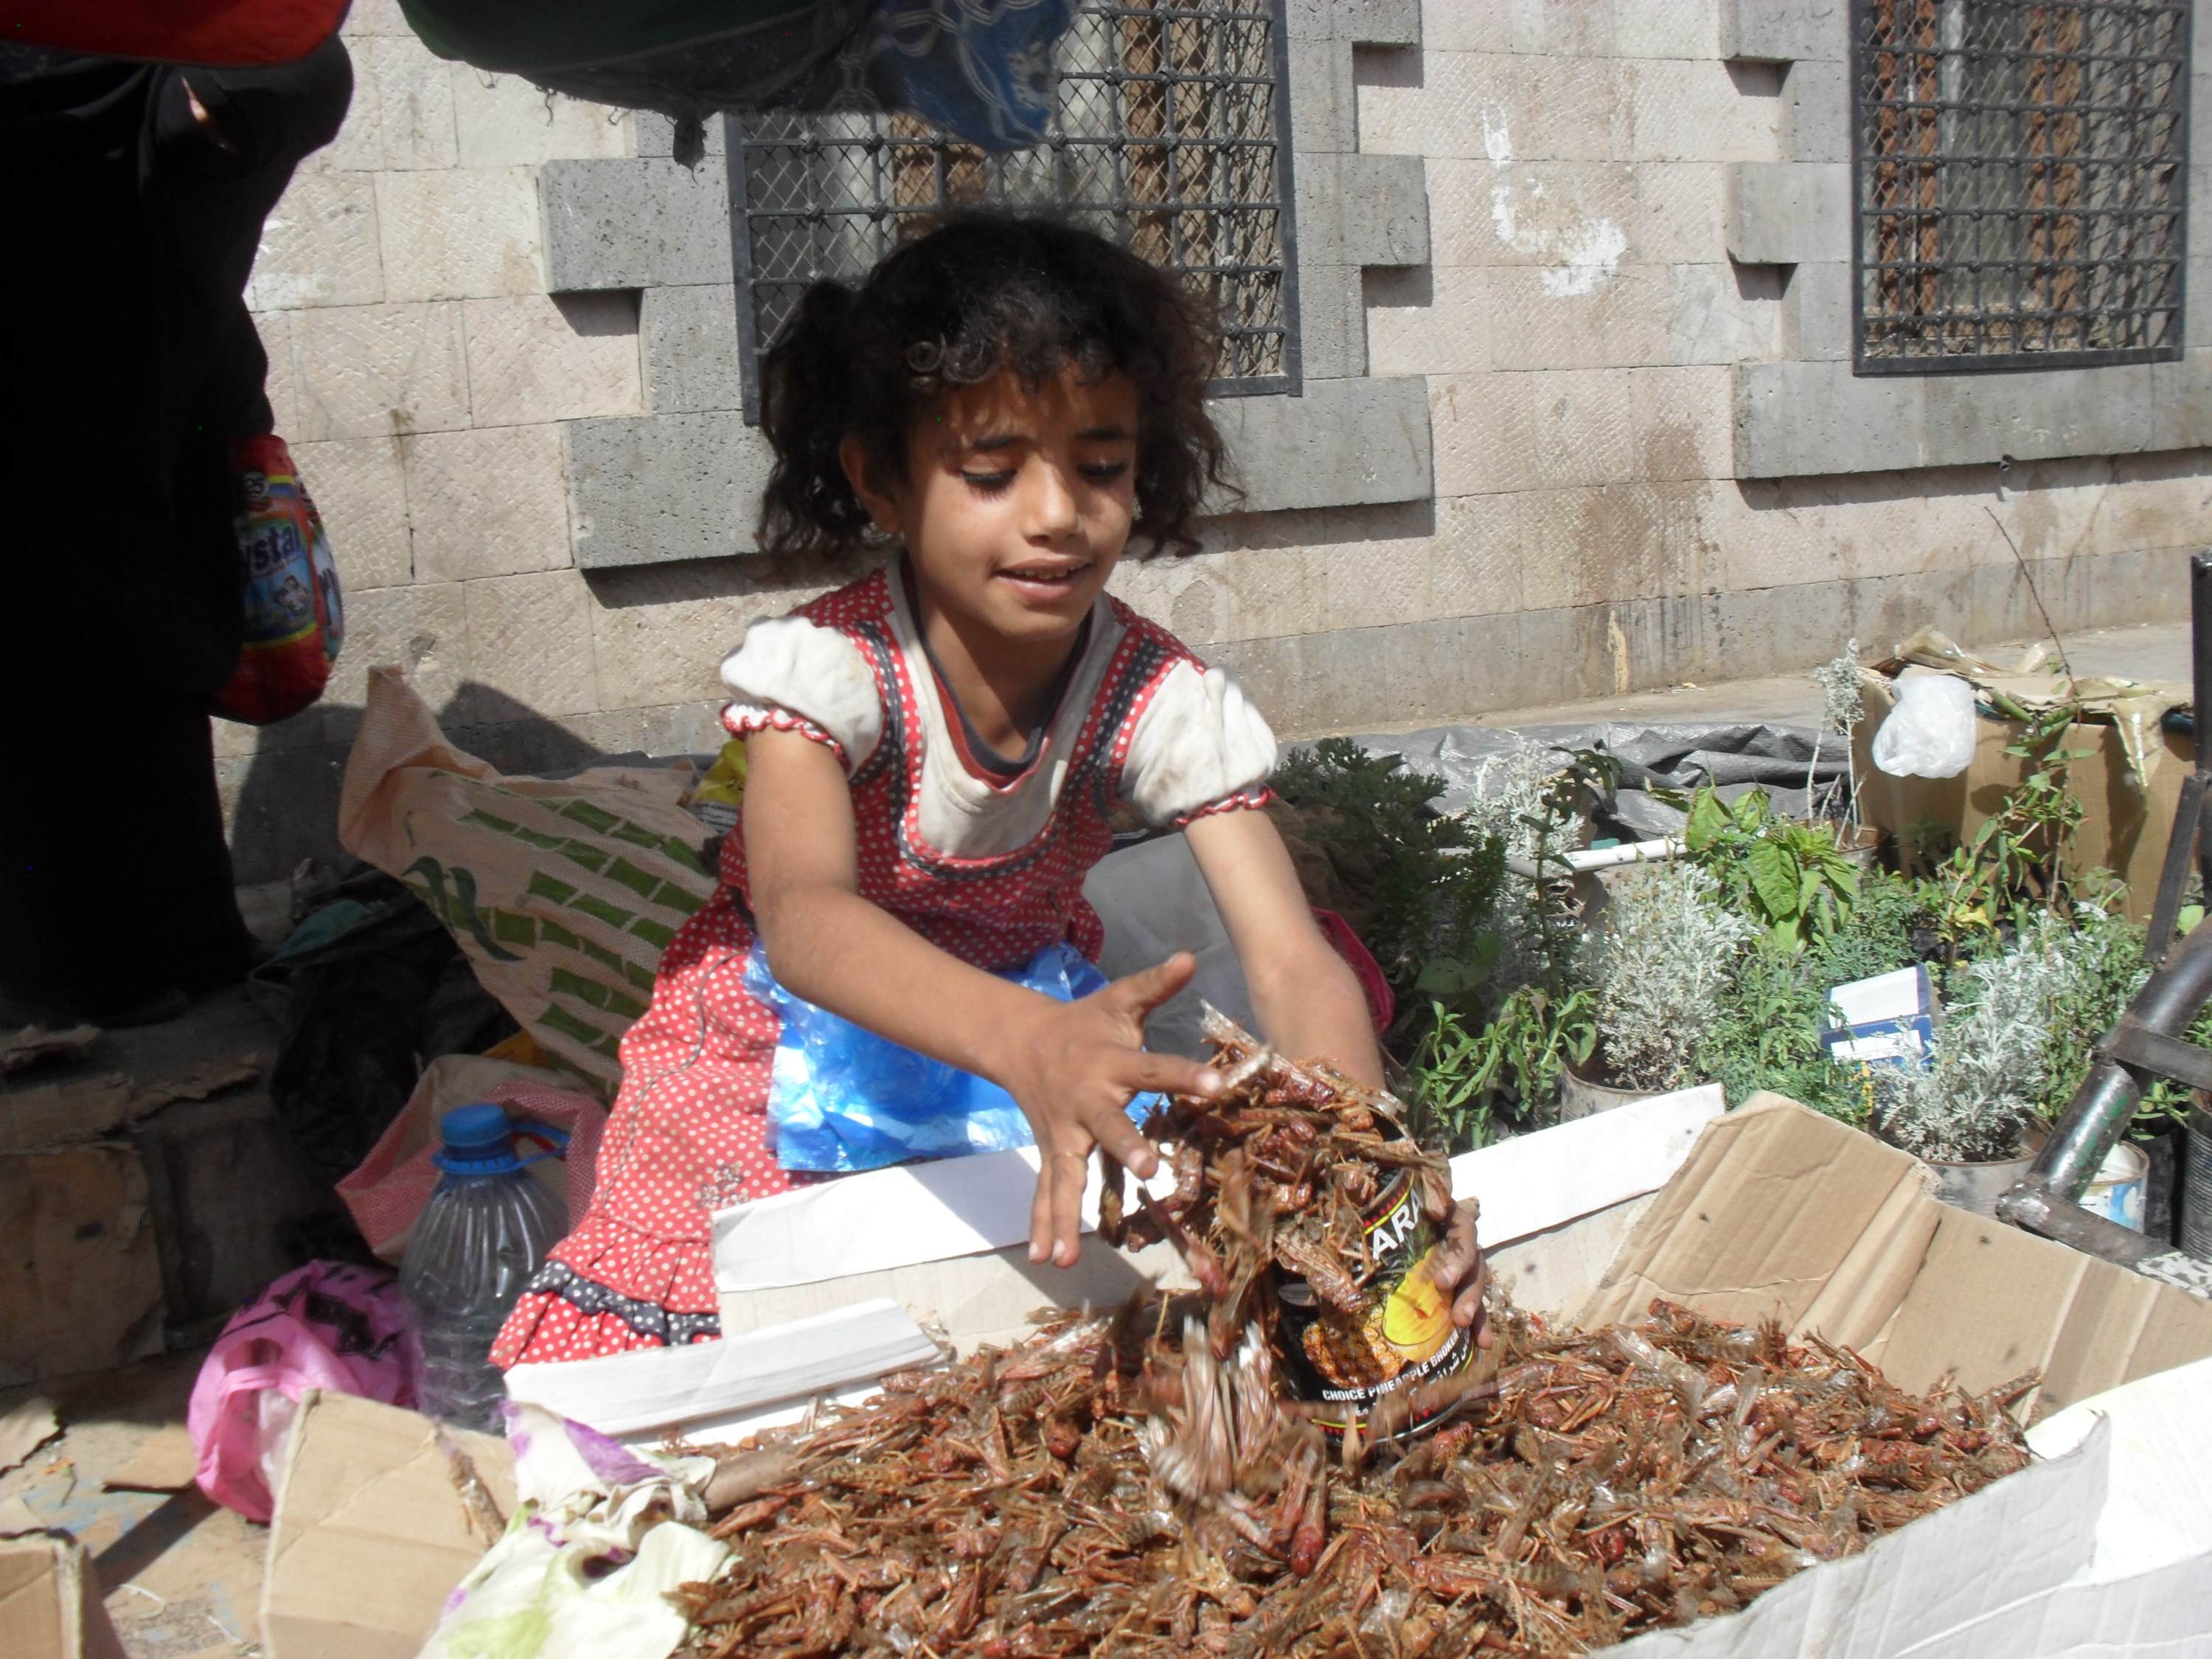 Young Jihad scoops up locusts she sells in the old city of Sanaa (MEE/Naseh Shaker)